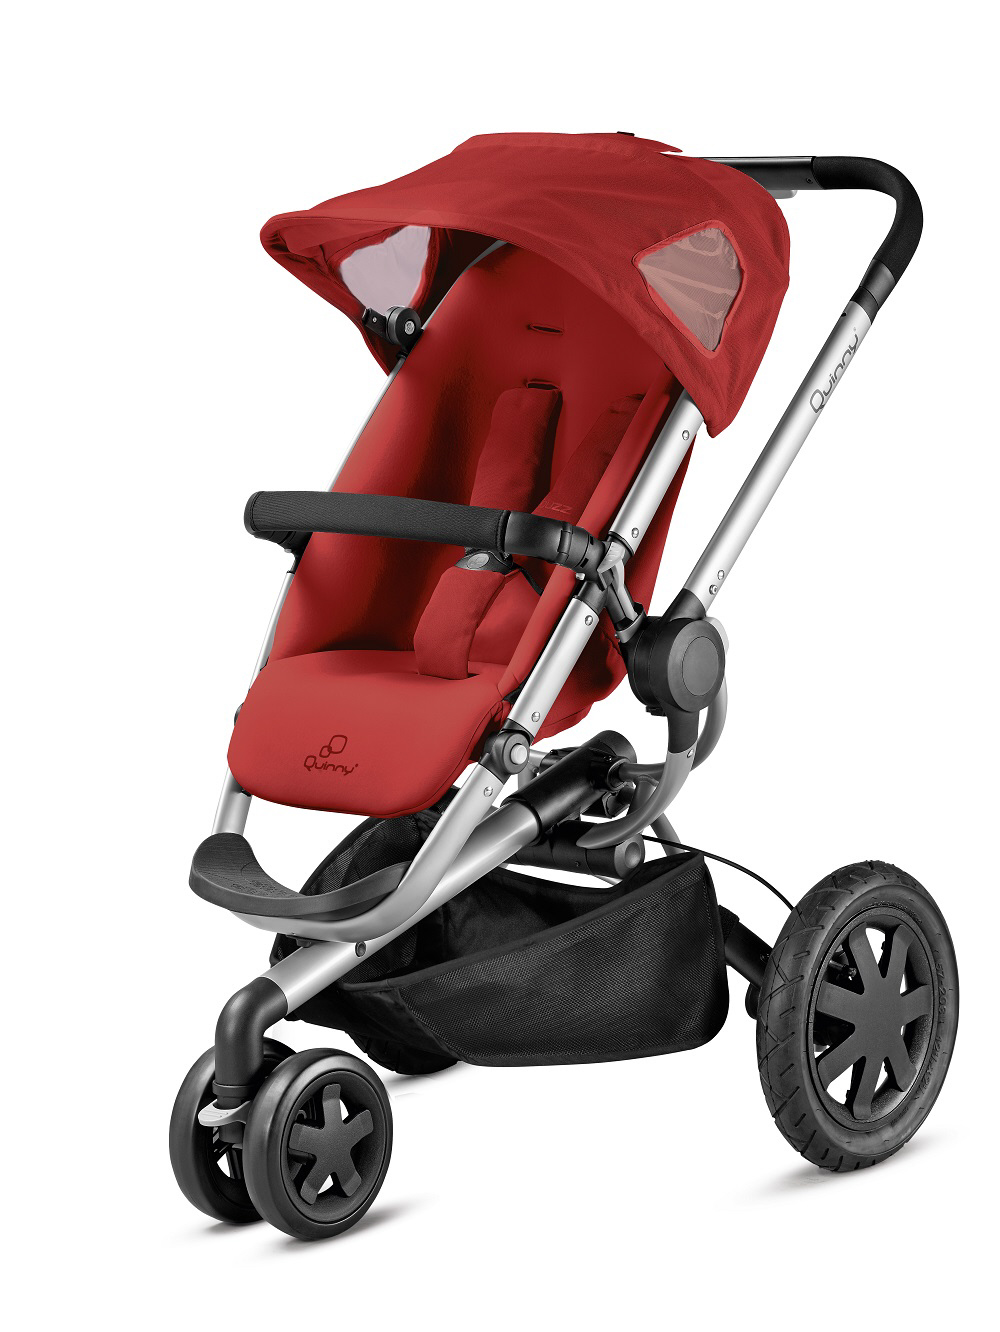 Quinny BUZZ 3 stroller 2014 Red Rumour - Buy at kidsroom ...